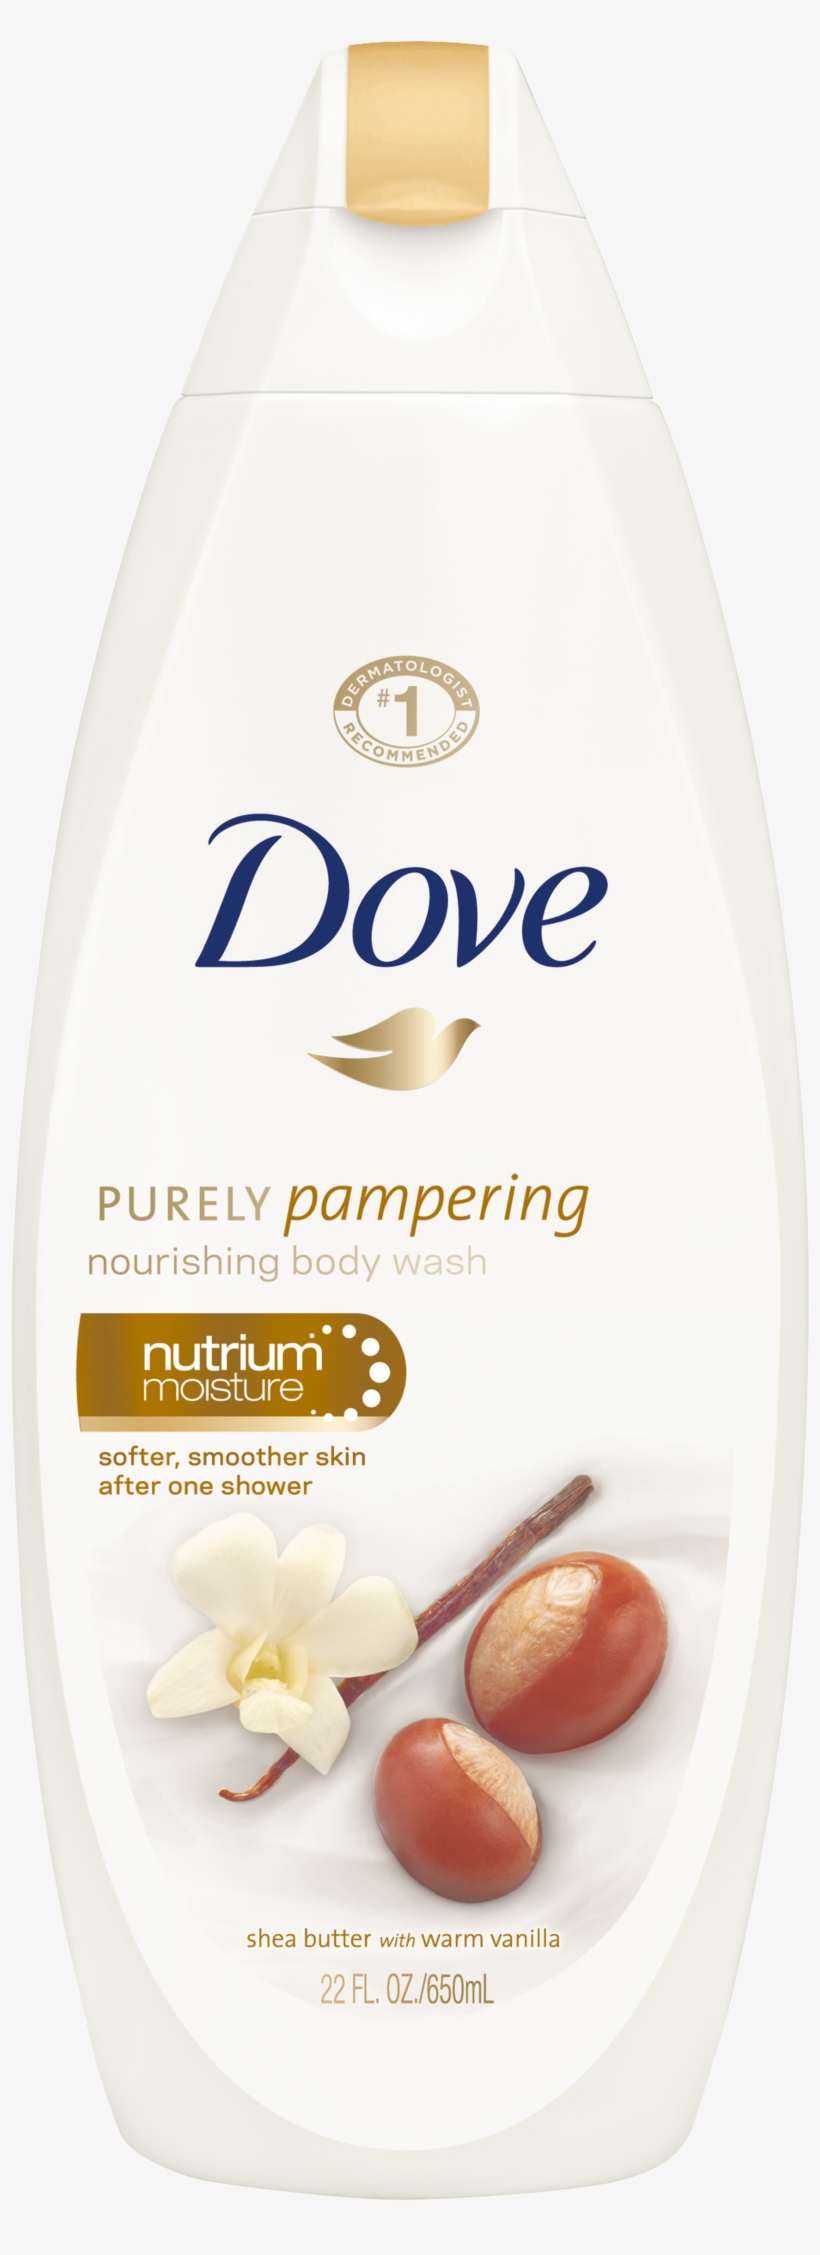 Dove Purely Pampering Shea Butter With Warm Vanilla - Dove Body Wash Shea Butter, transparent png #8641138